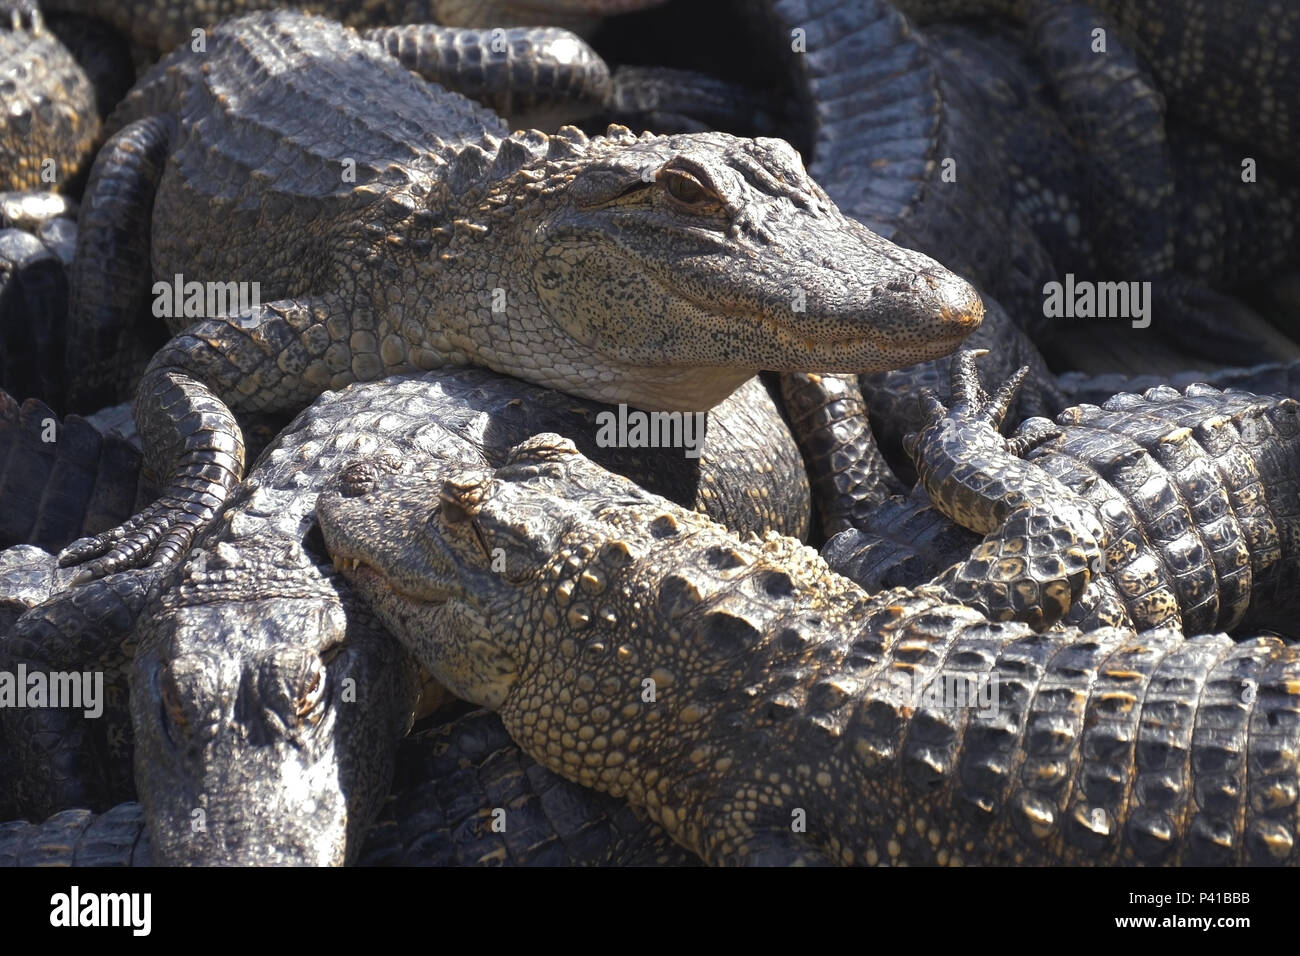 Alligators breeding farm. Stock Photo